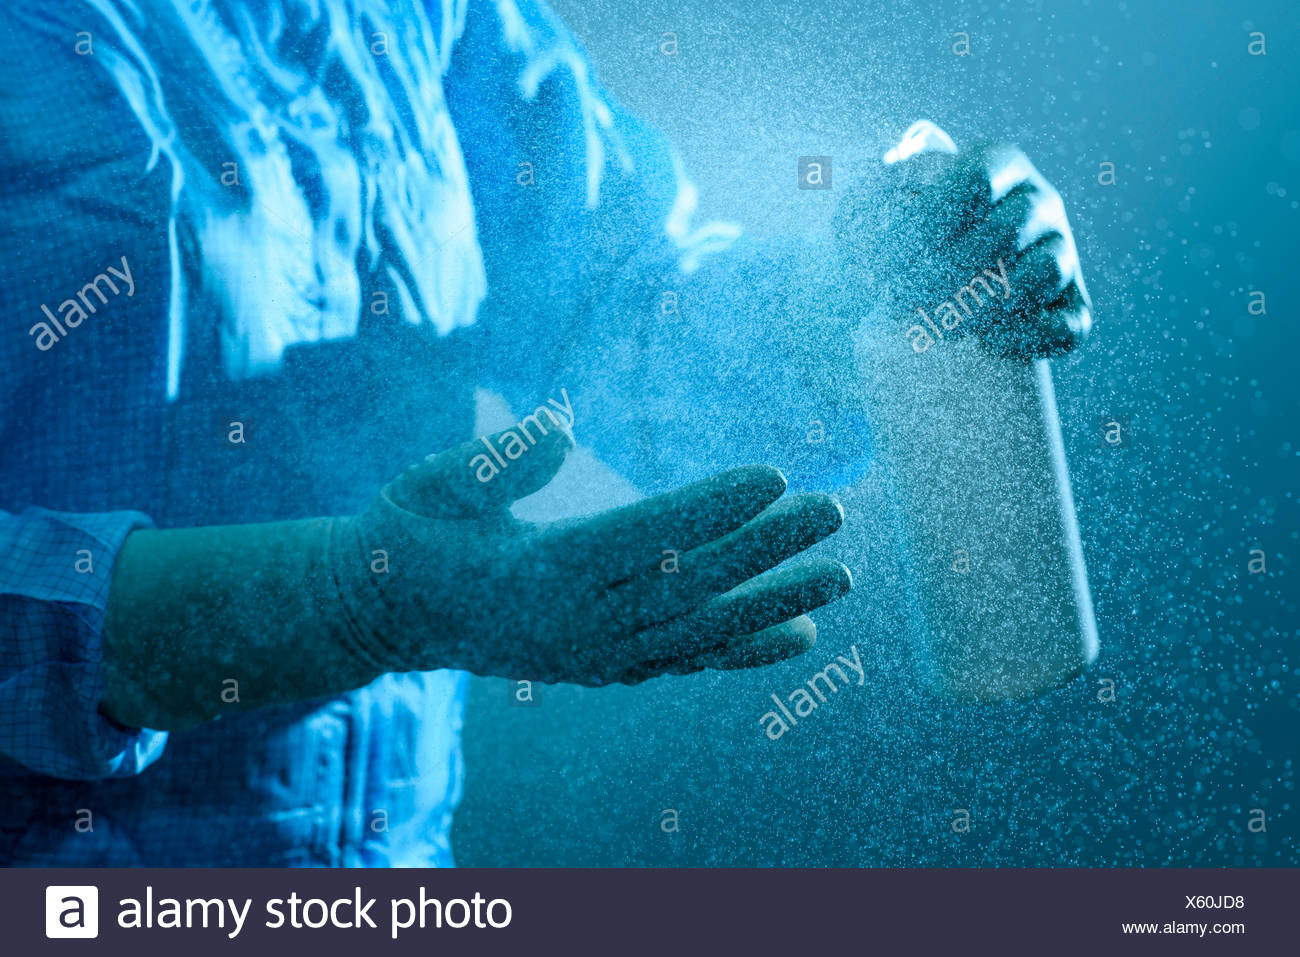 Midsection Of Person Spraying Antibacterial On Hands - Stock Image